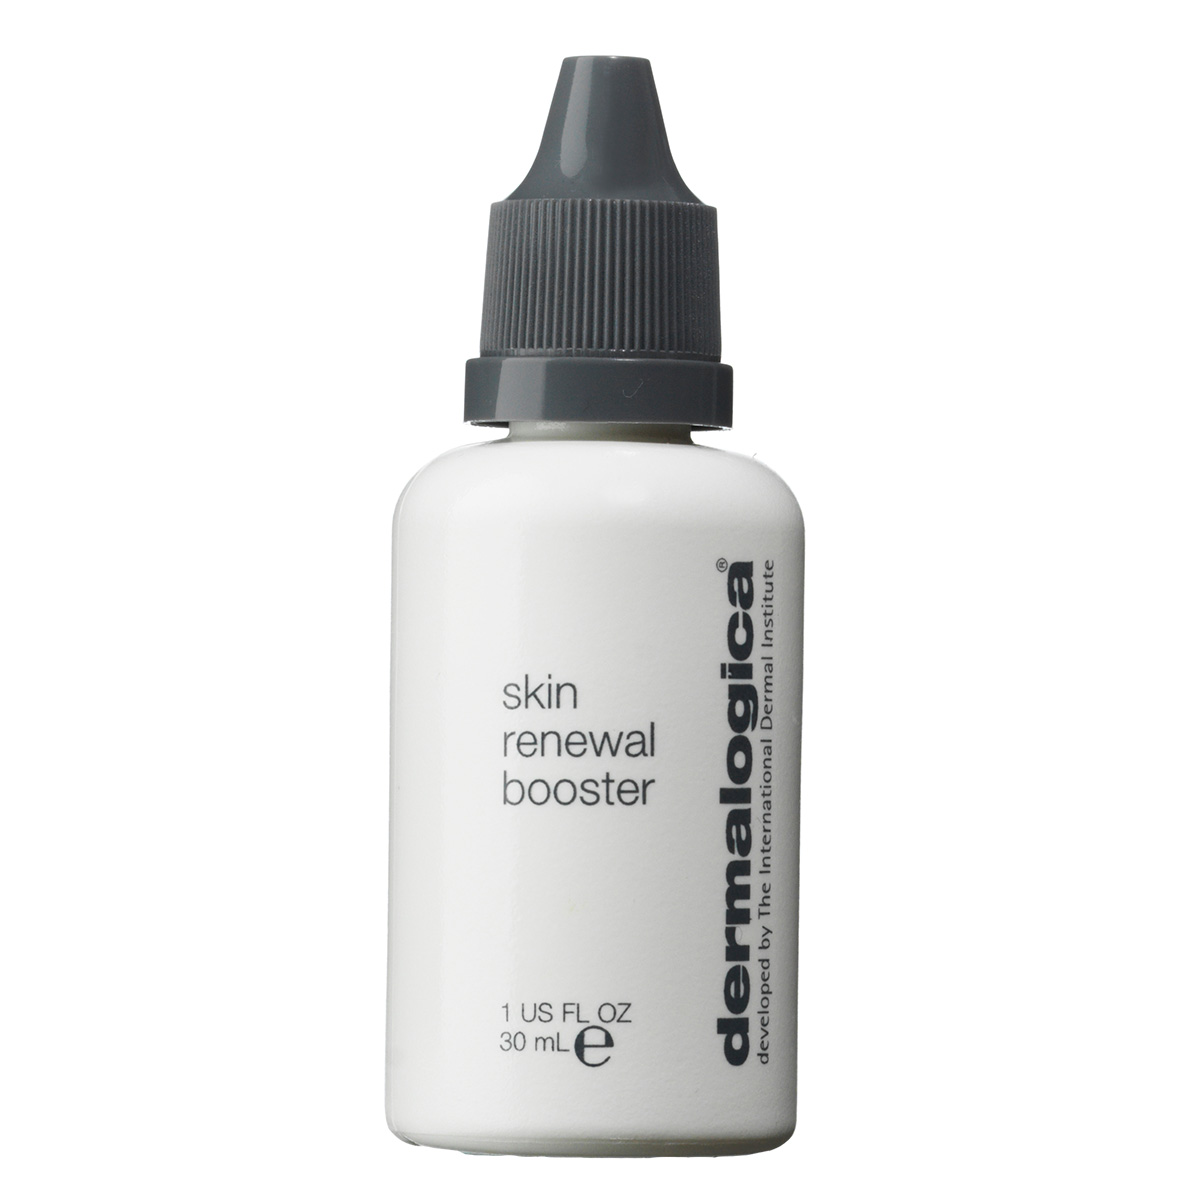 Dermalogica Skin Renewal Booster - 30 ml